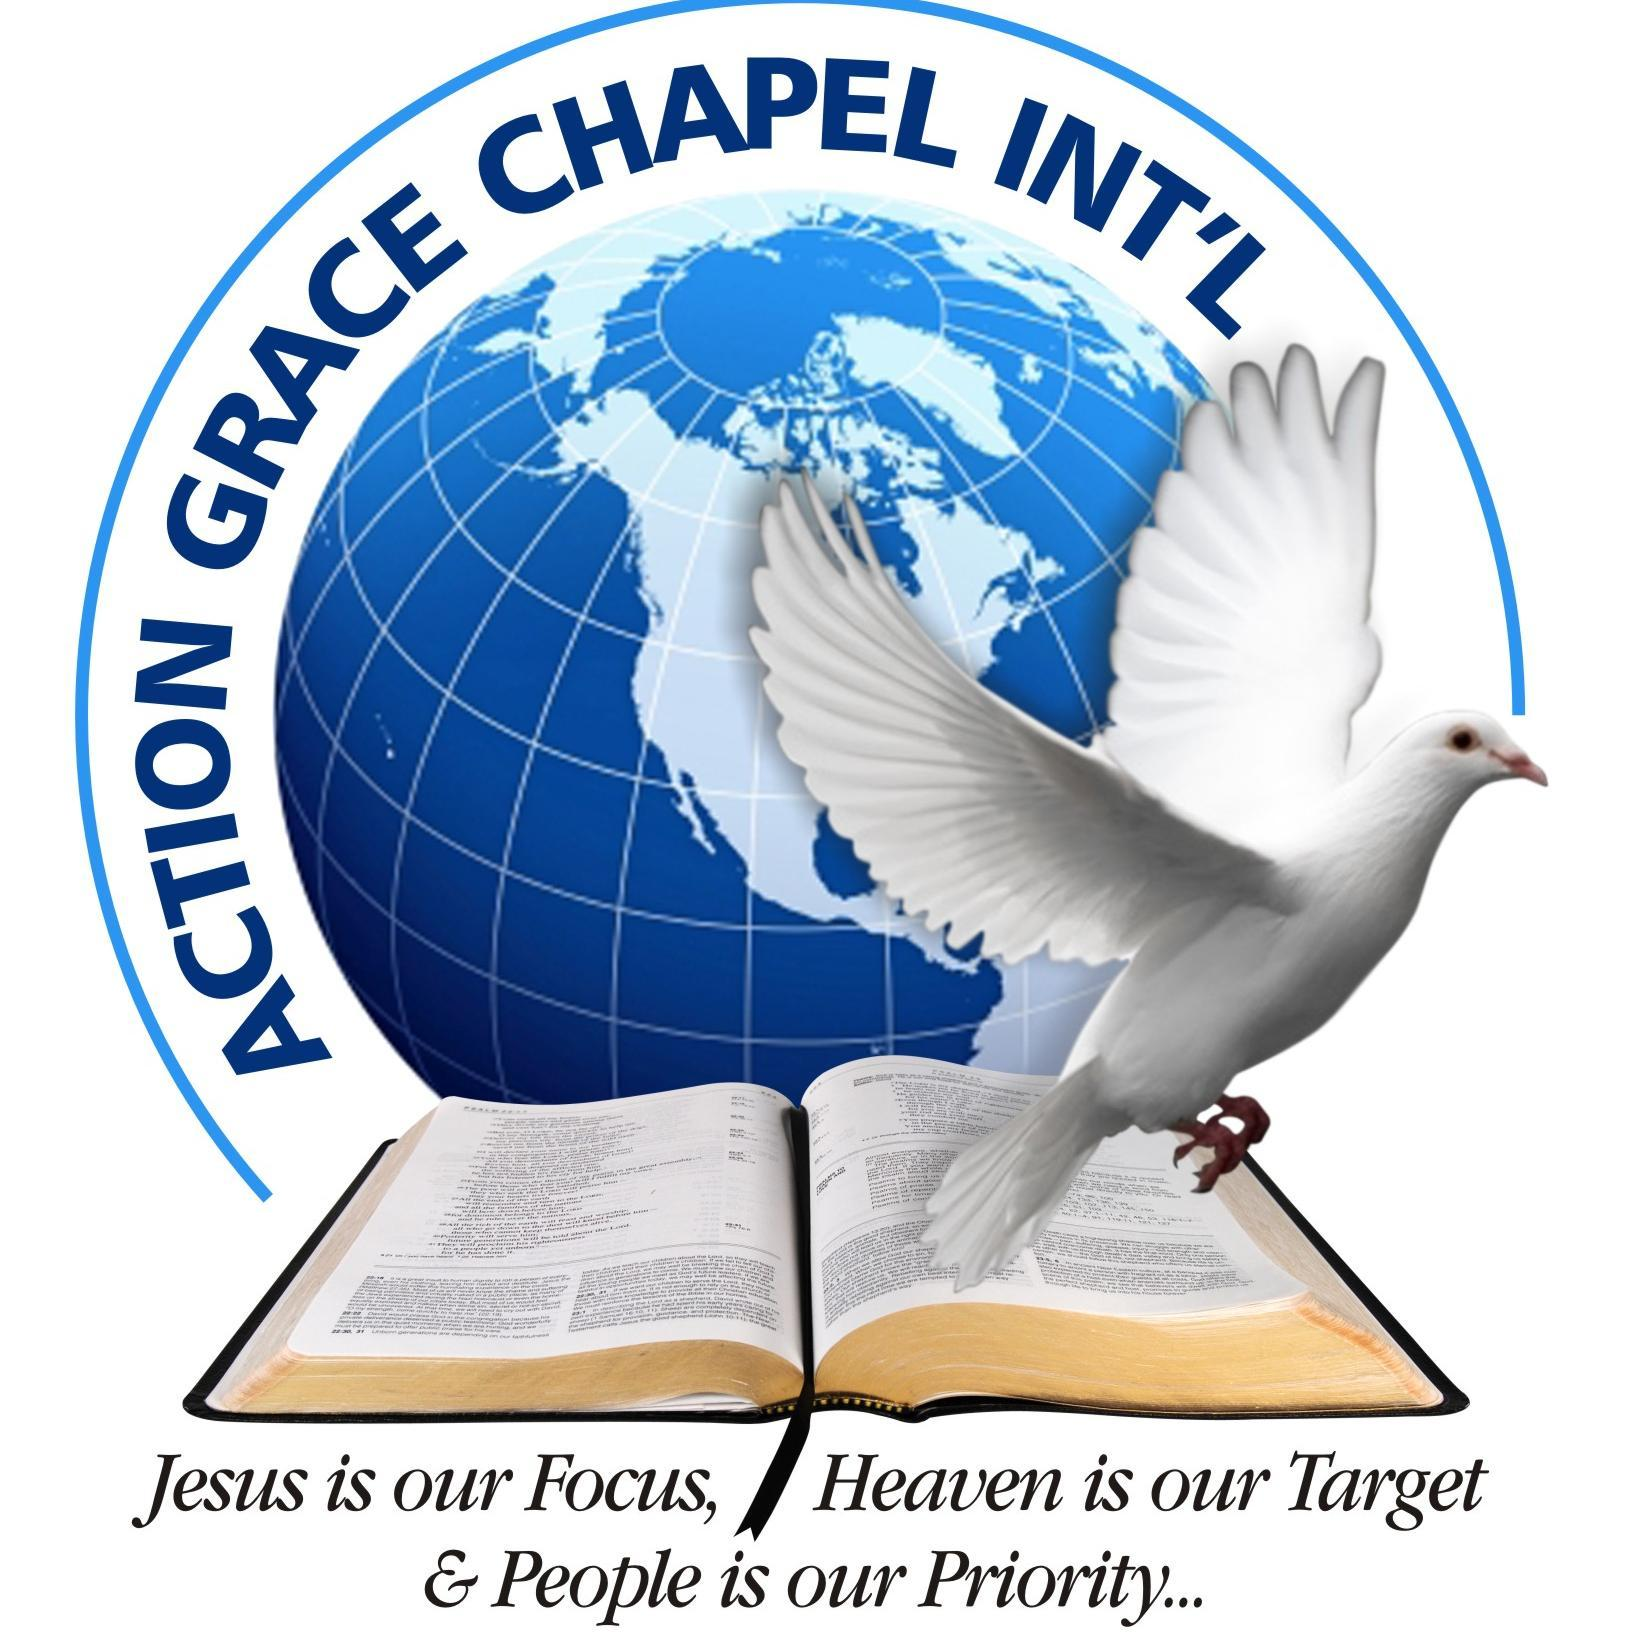 Action Grace Chapel (@ActionGrace).